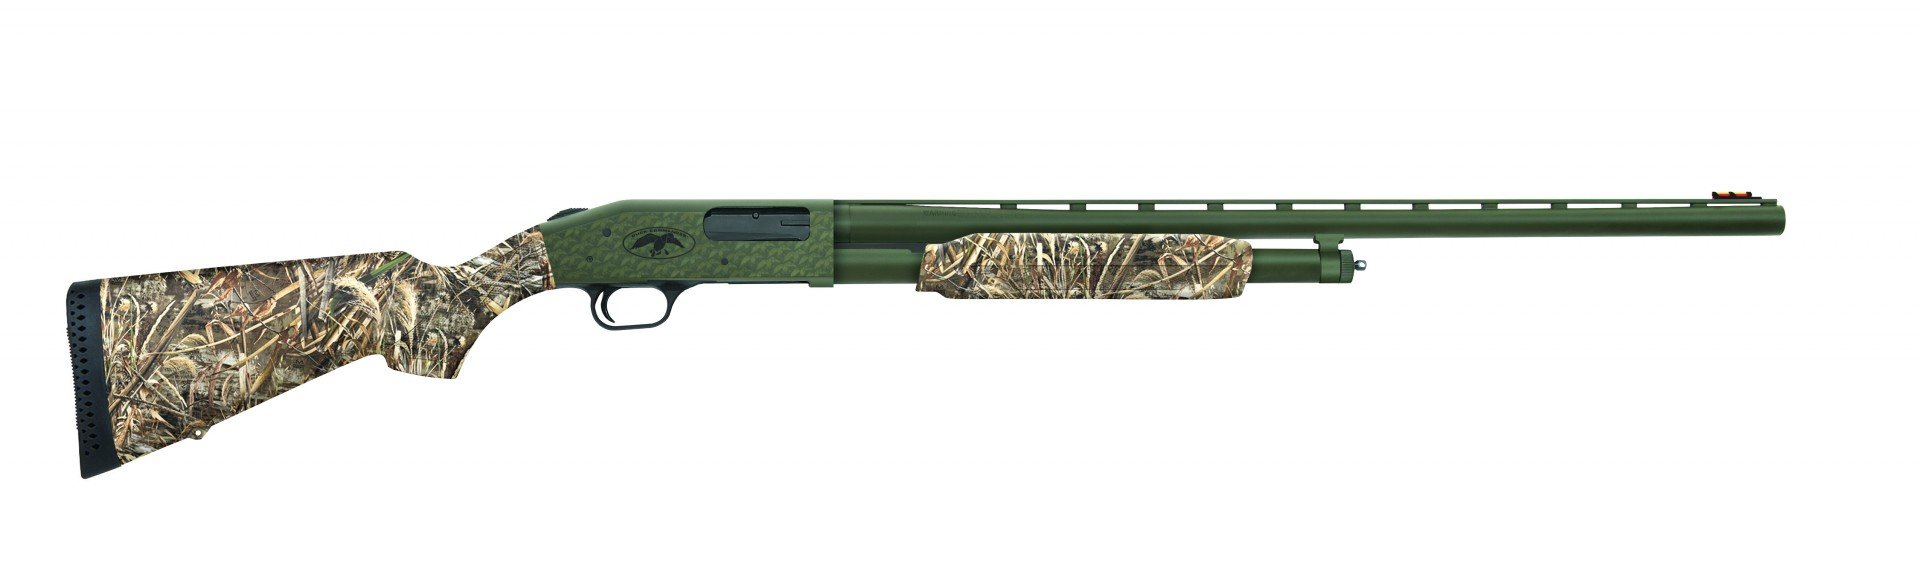 Mossberg 500 Waterfowl - Duck Commander Signature (52260)